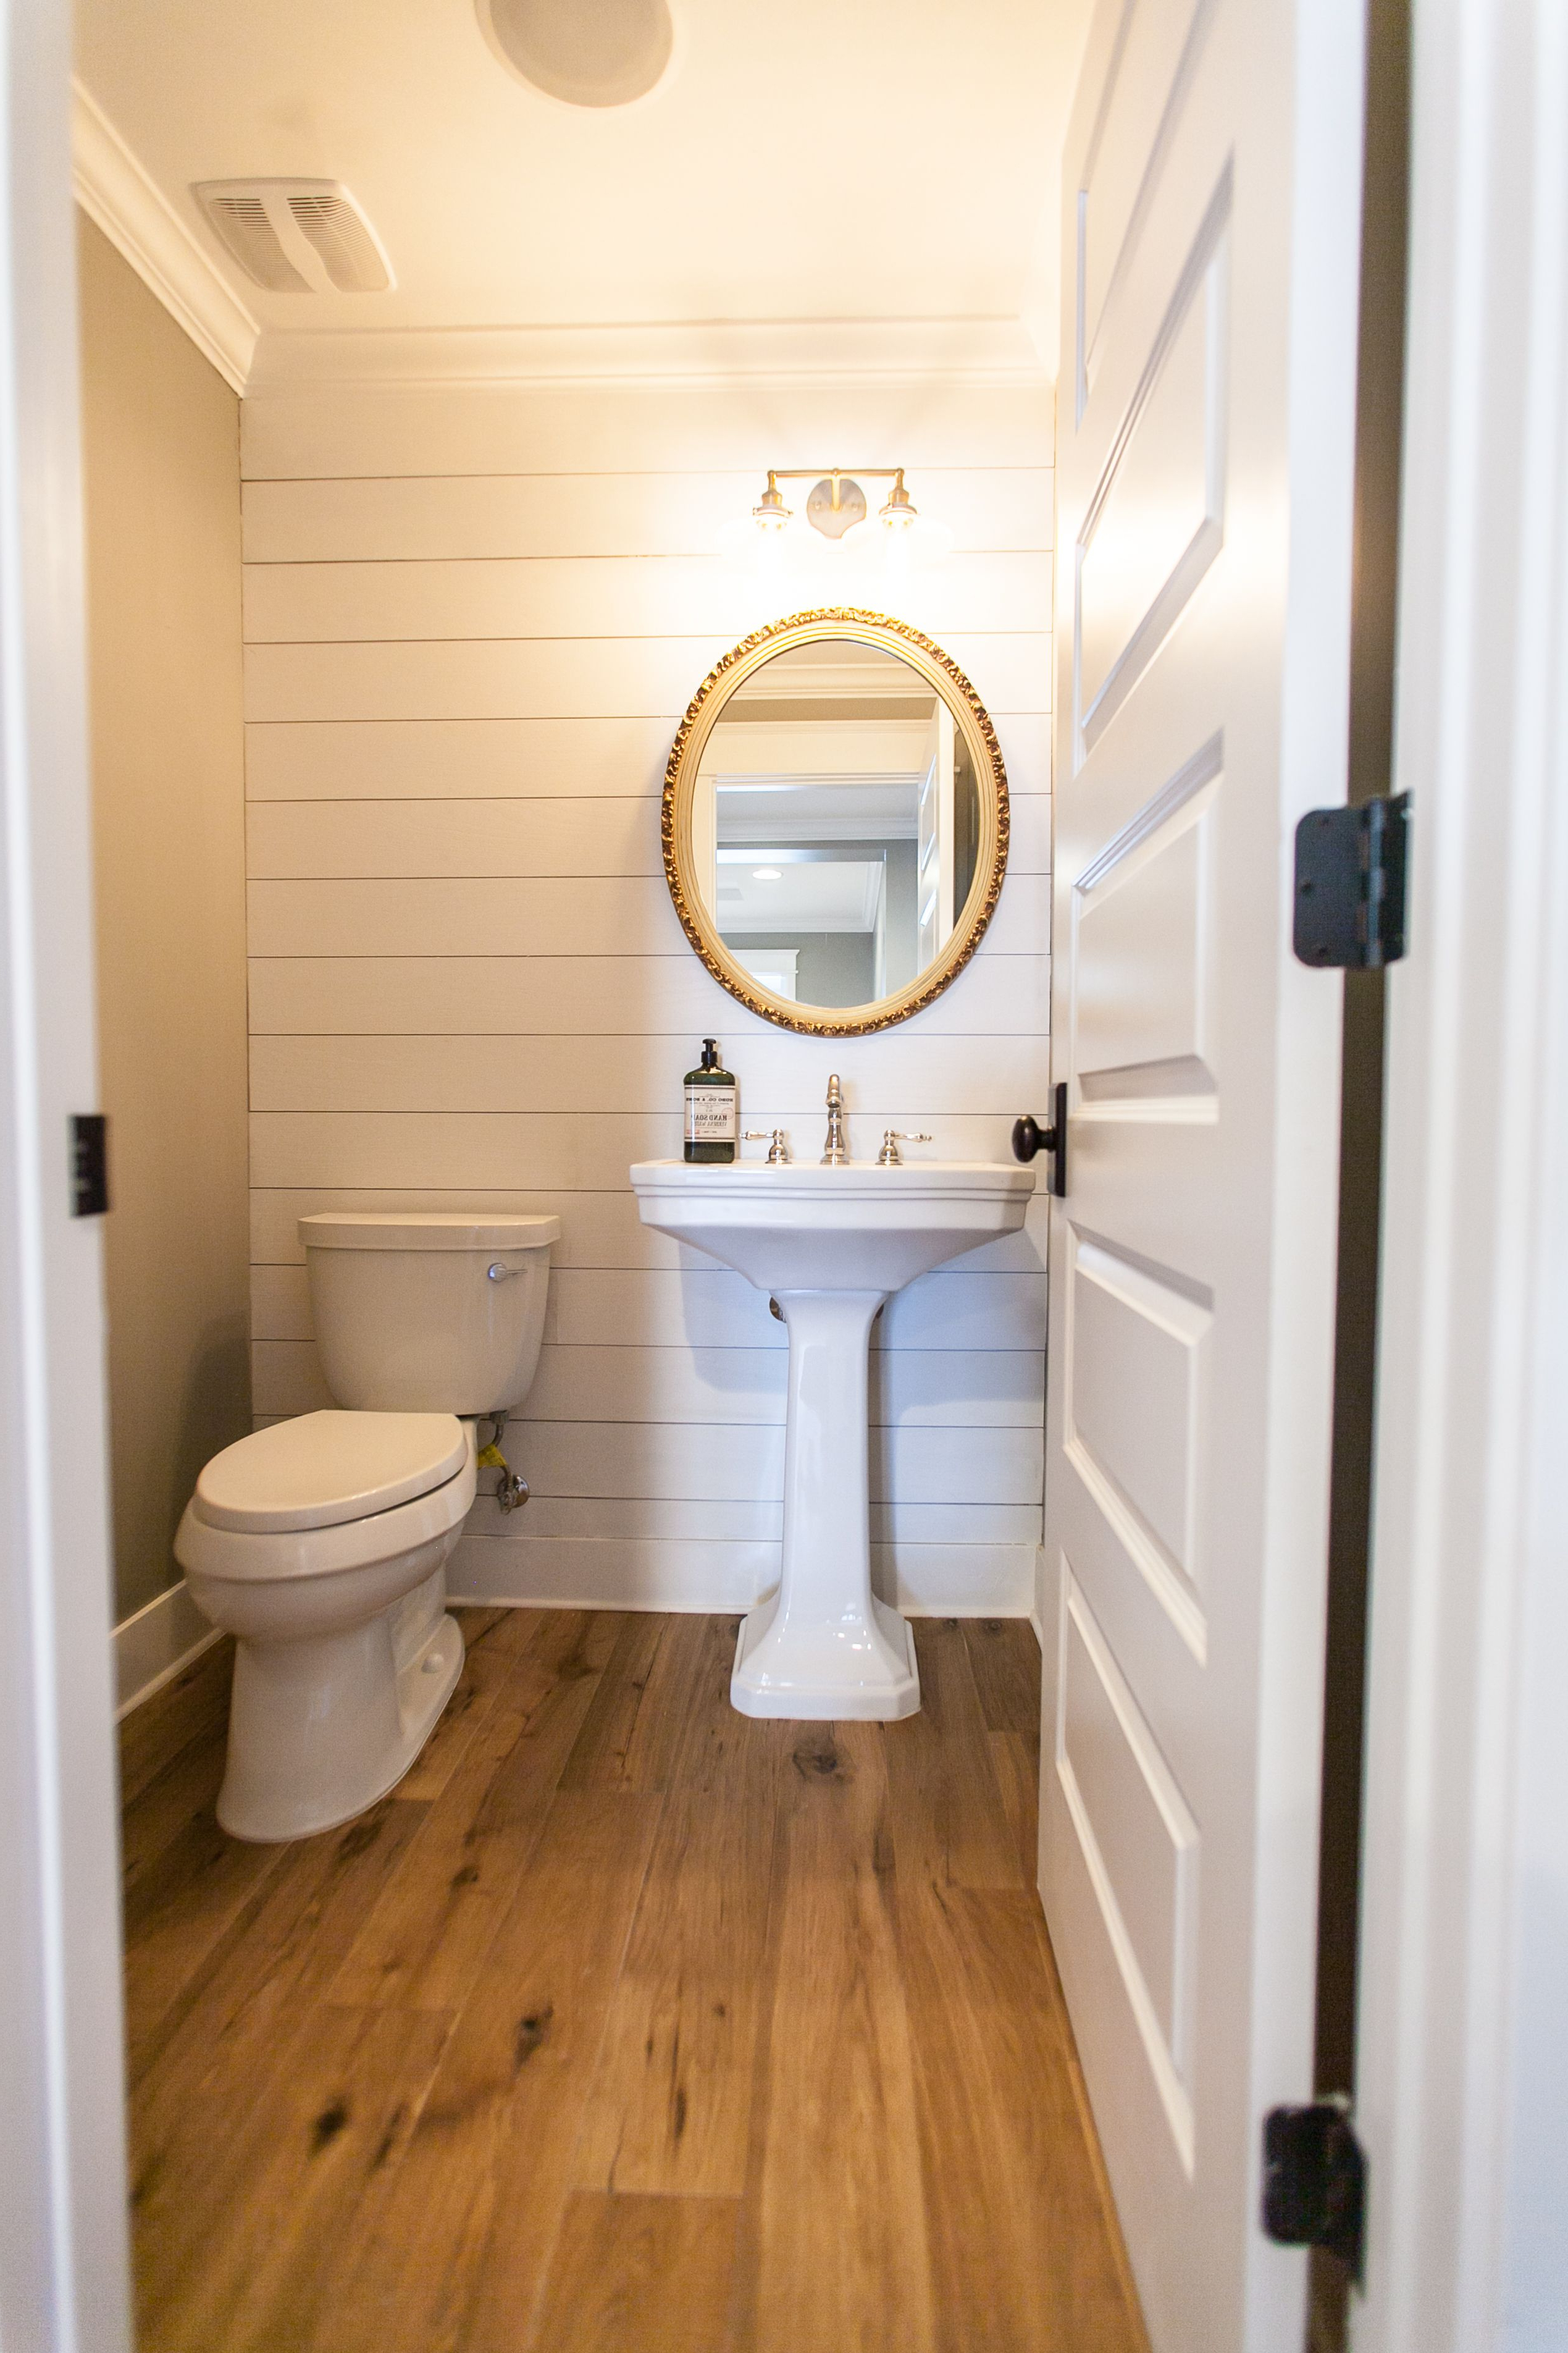 Powder Room With Planked Walls And Vintage Gold Mirror